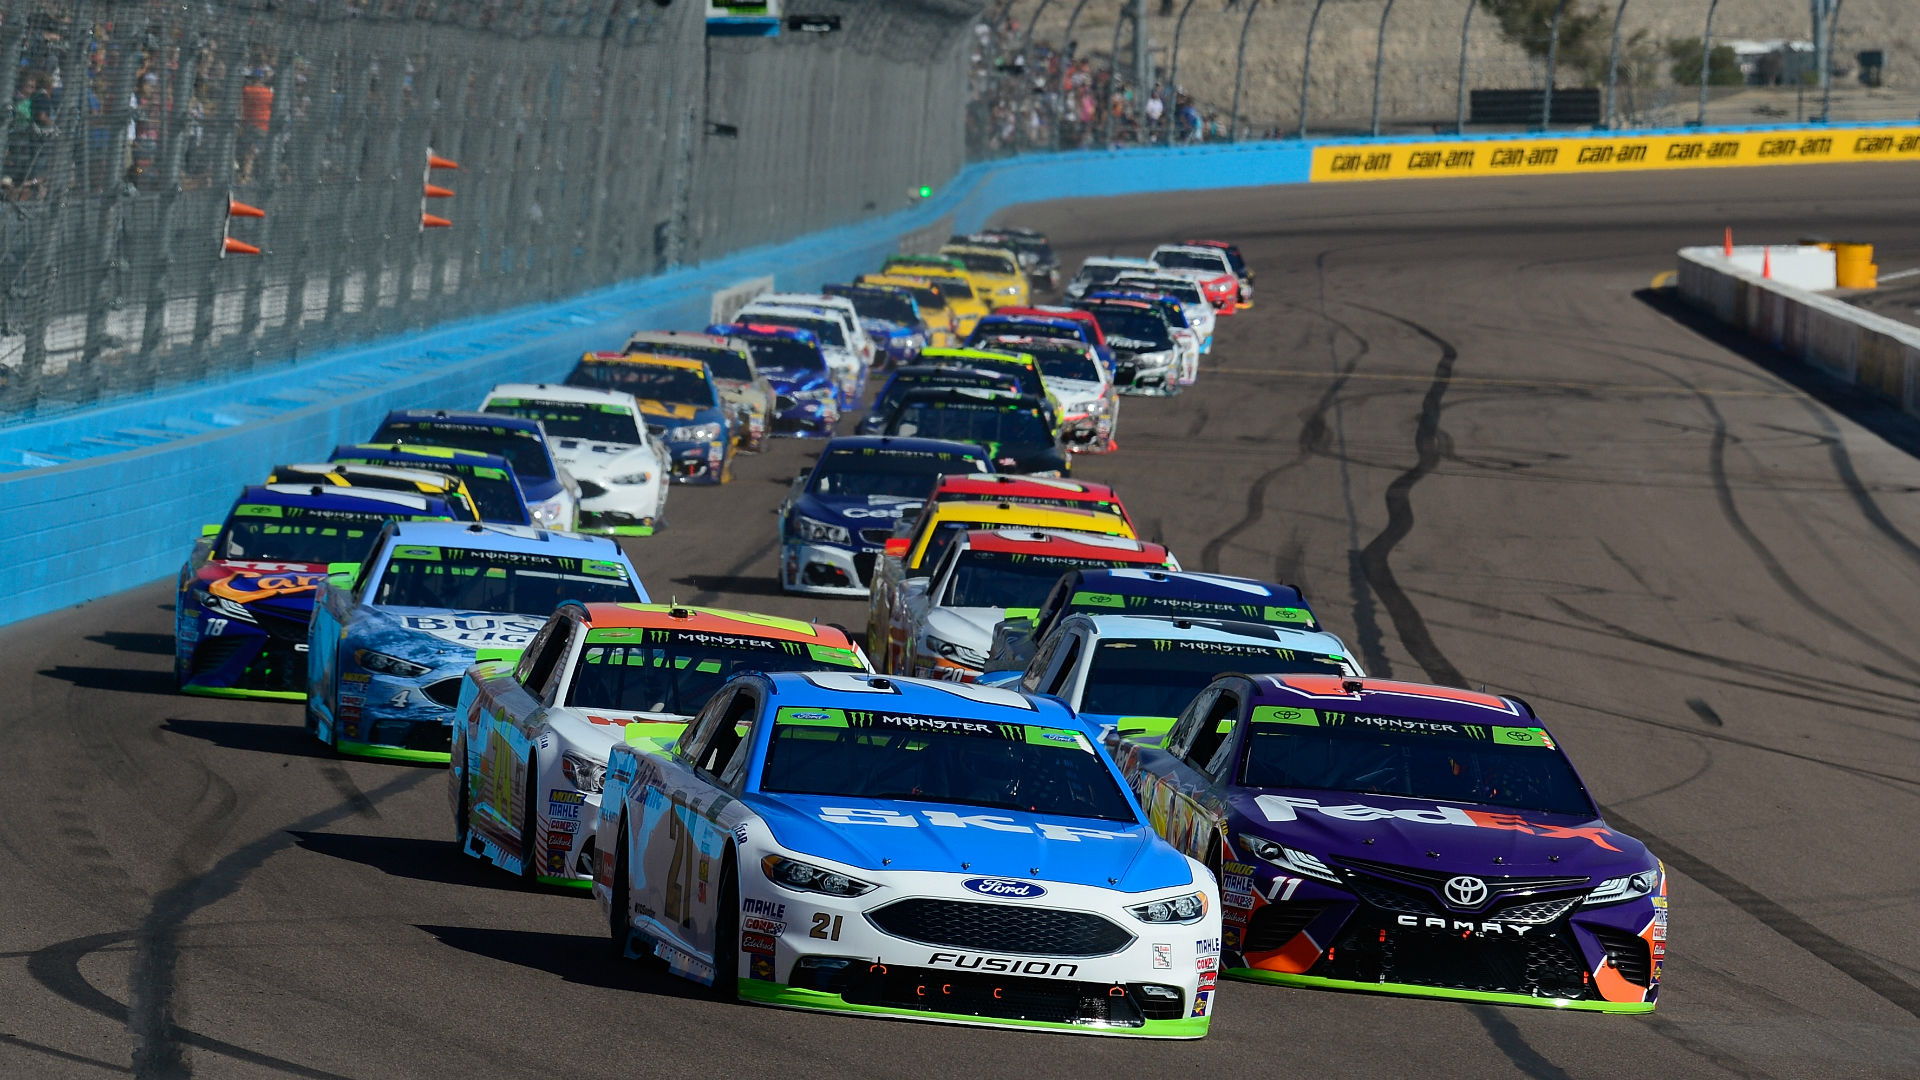 Nascar Schedule 2019 Date Time Tv Channels For Every